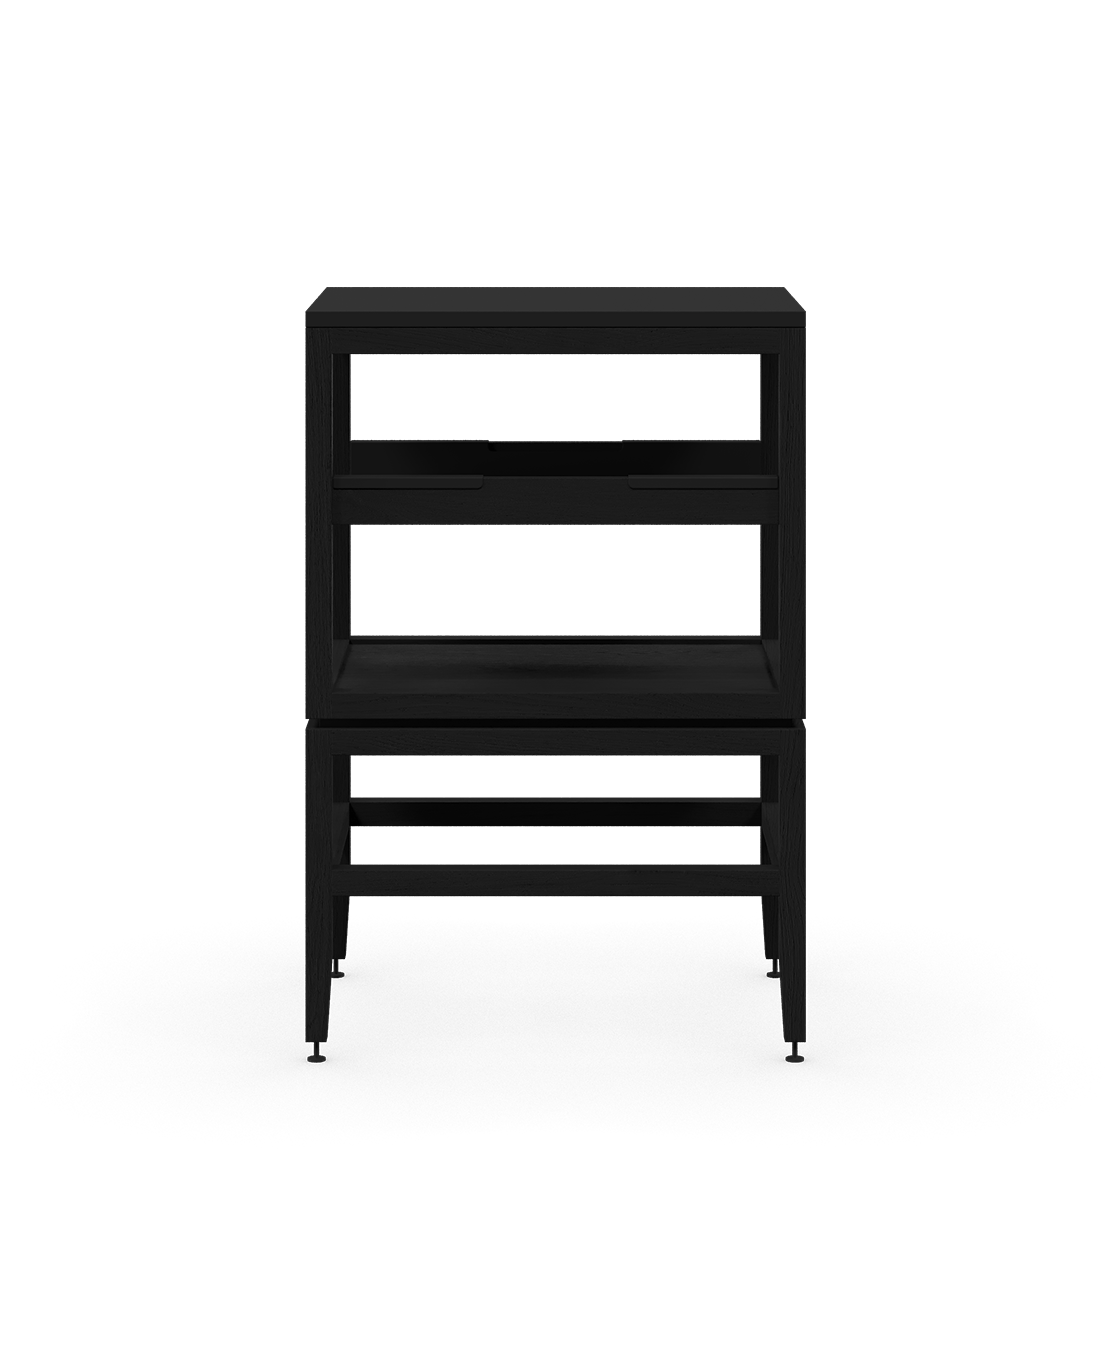 coquo volitare midnight black stained oak solid wood modular cube 1 shelf storage open cabinet 18 inch C2-N-1824-0012-BK